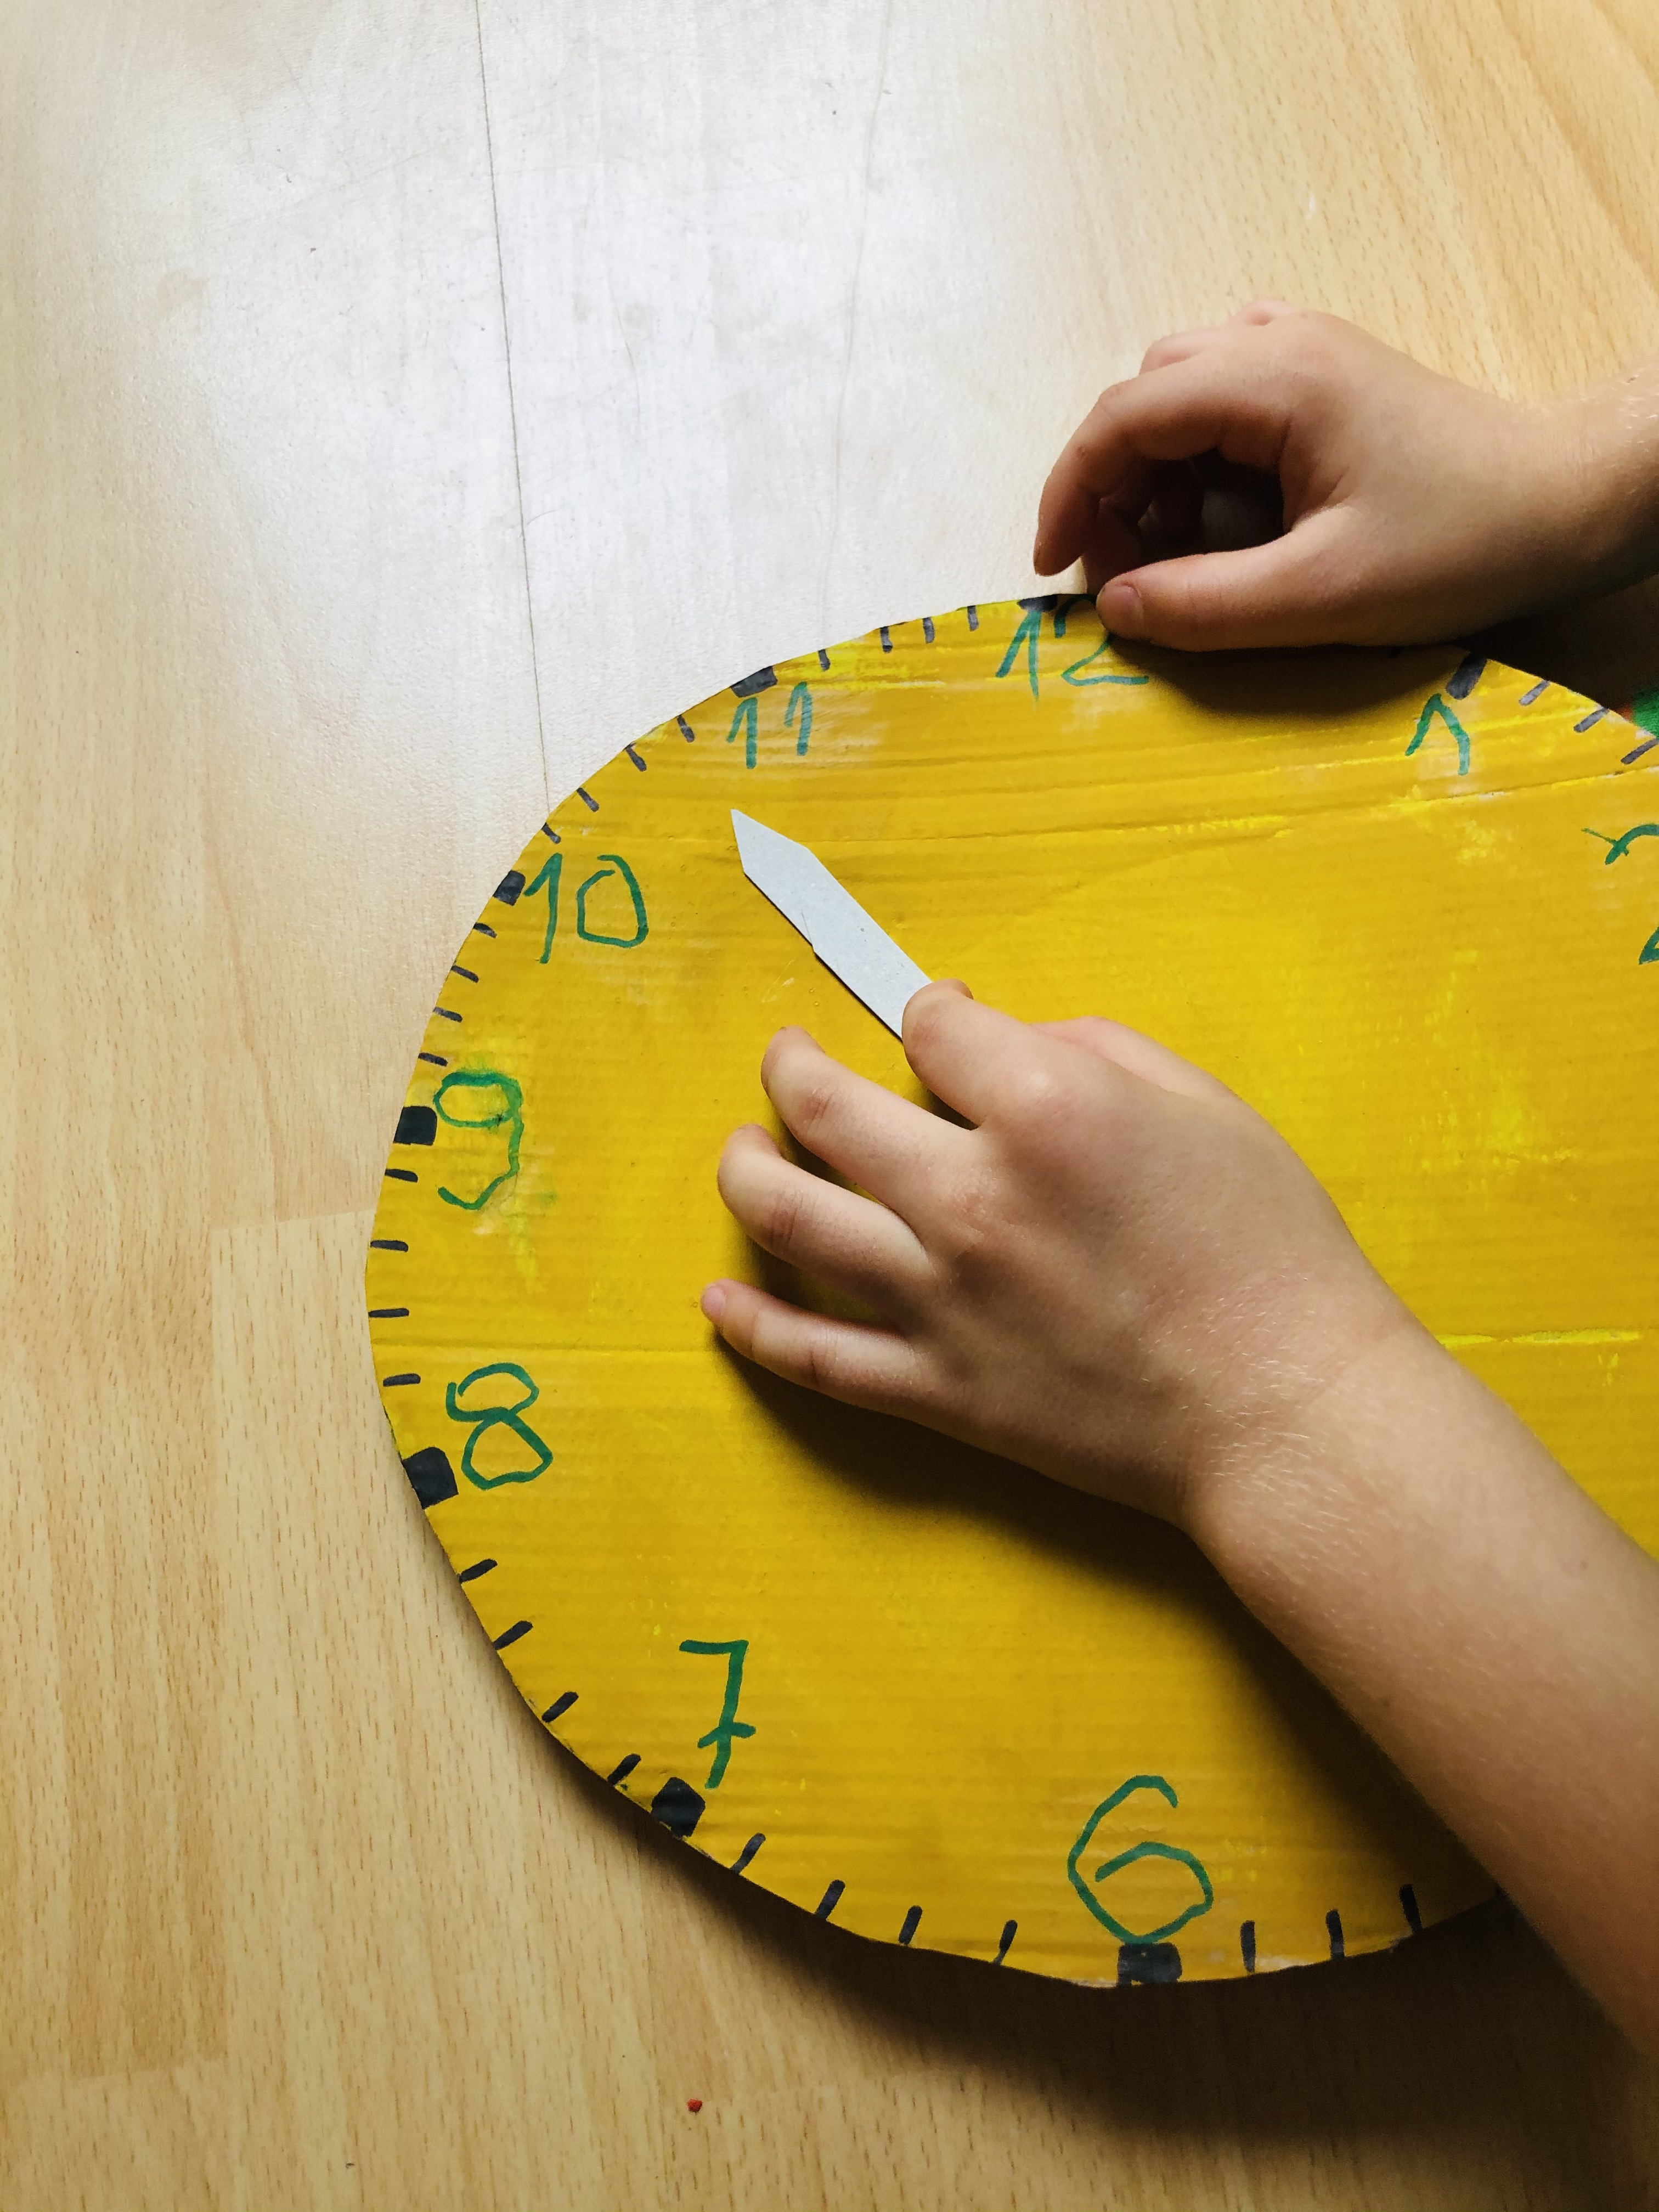 kid playing with a model clock